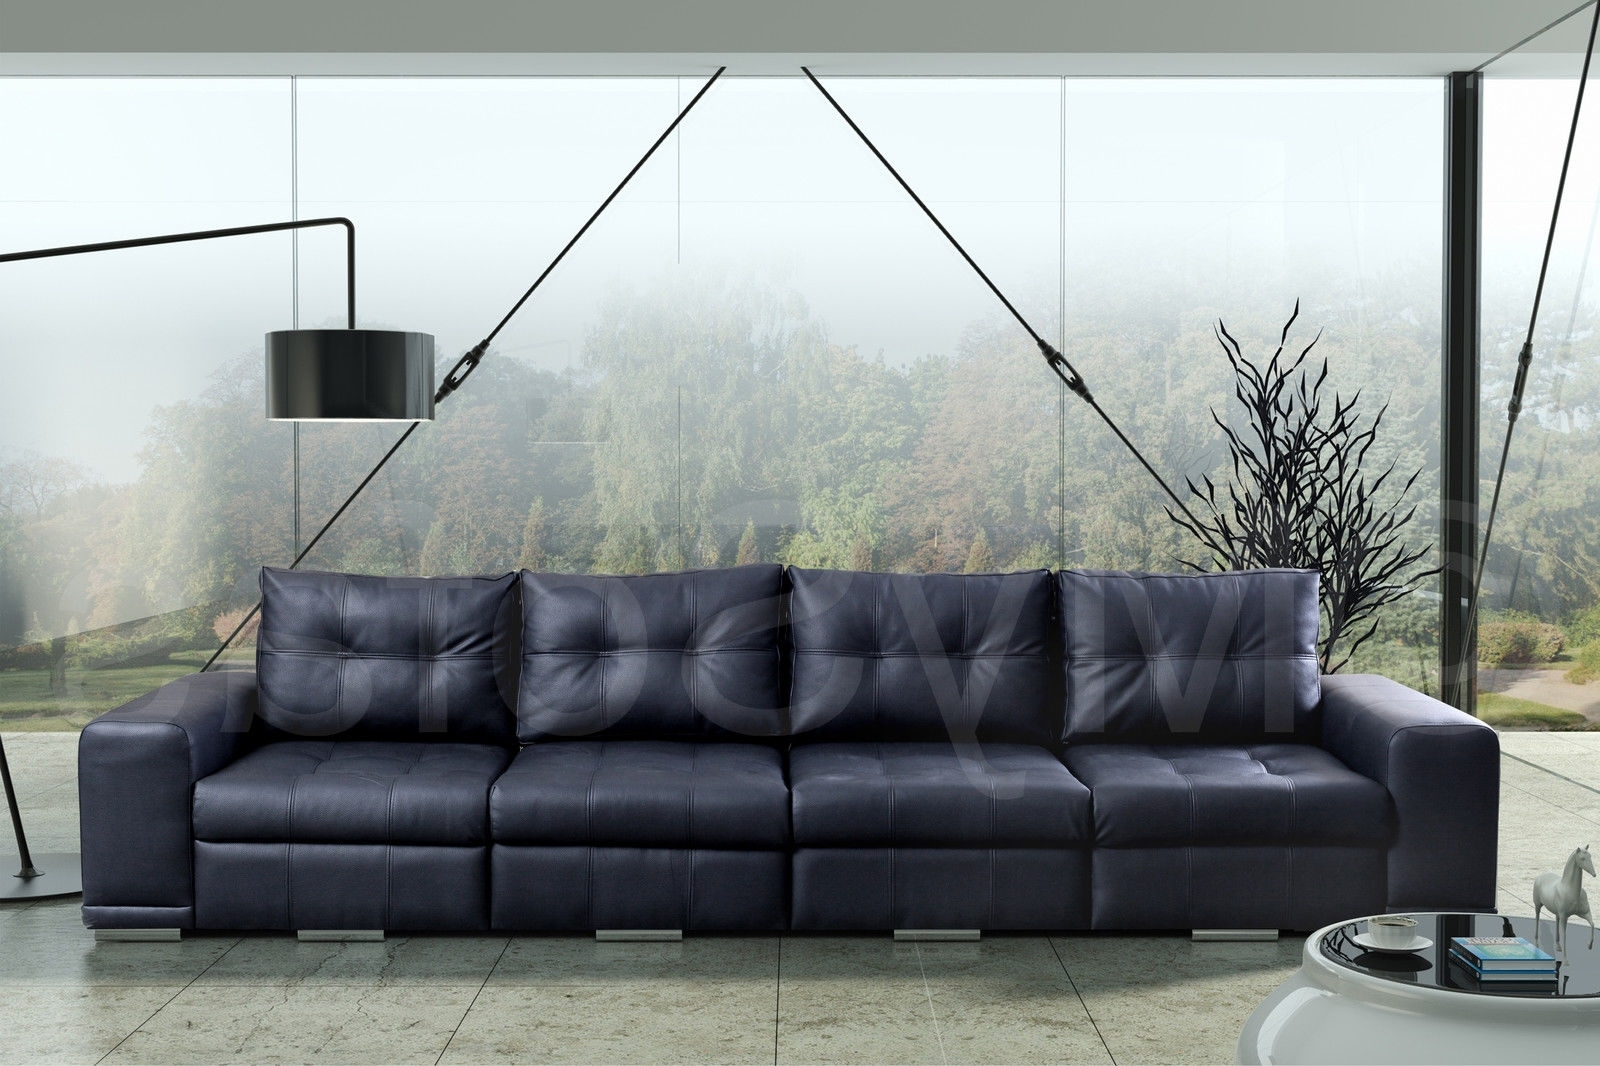 4 Seater Leather Sofas Uk (View 15 of 20)